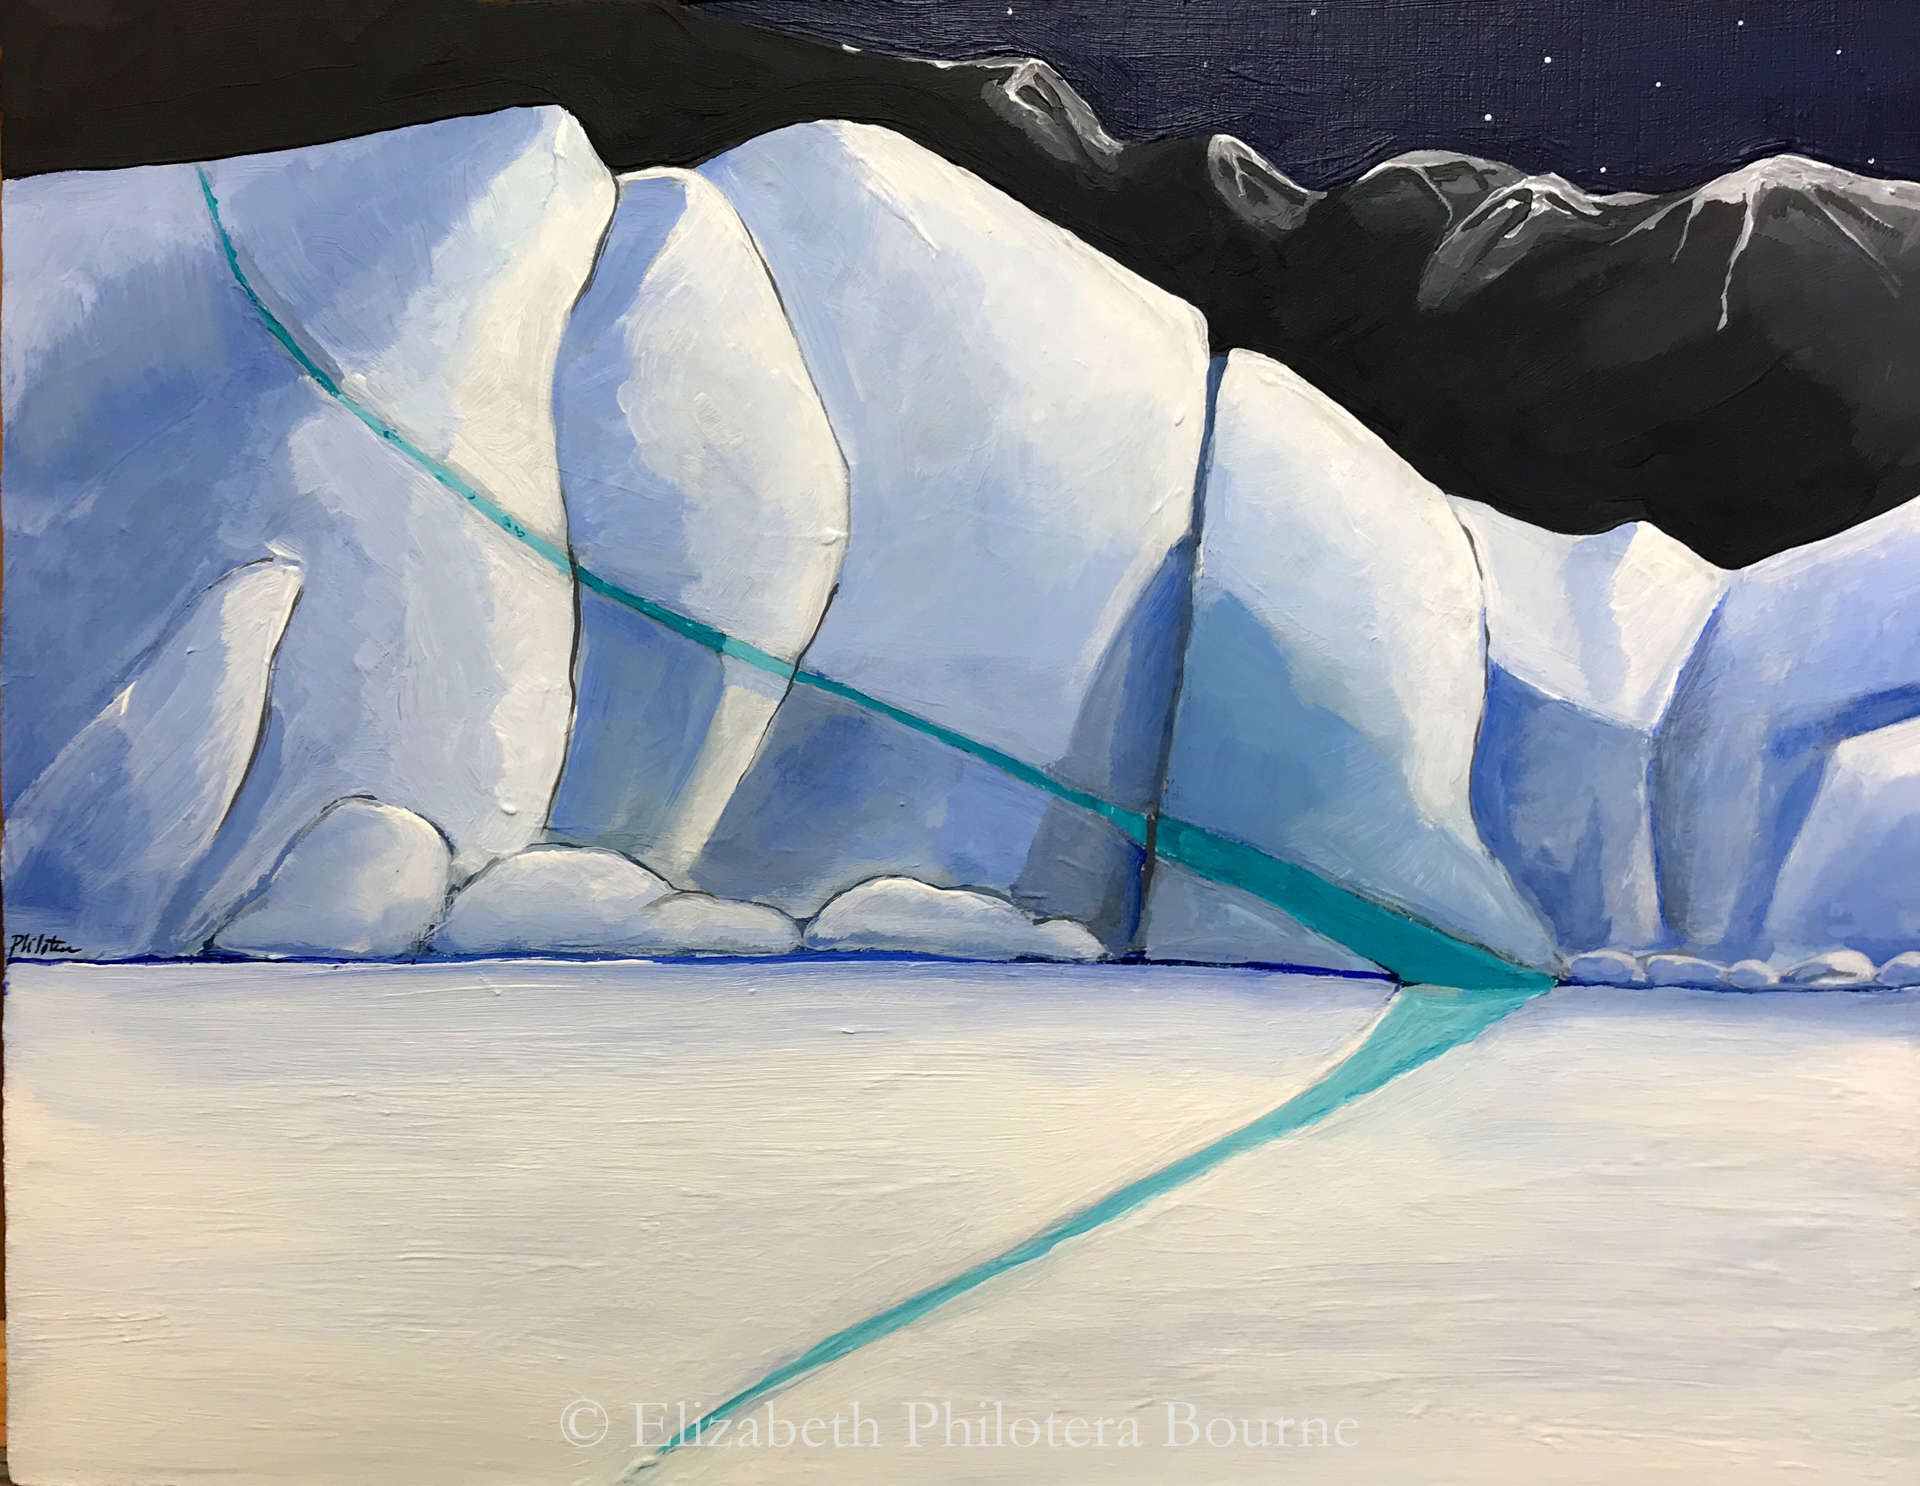 Painting blue ice with green streak against grozen sea and black mountains